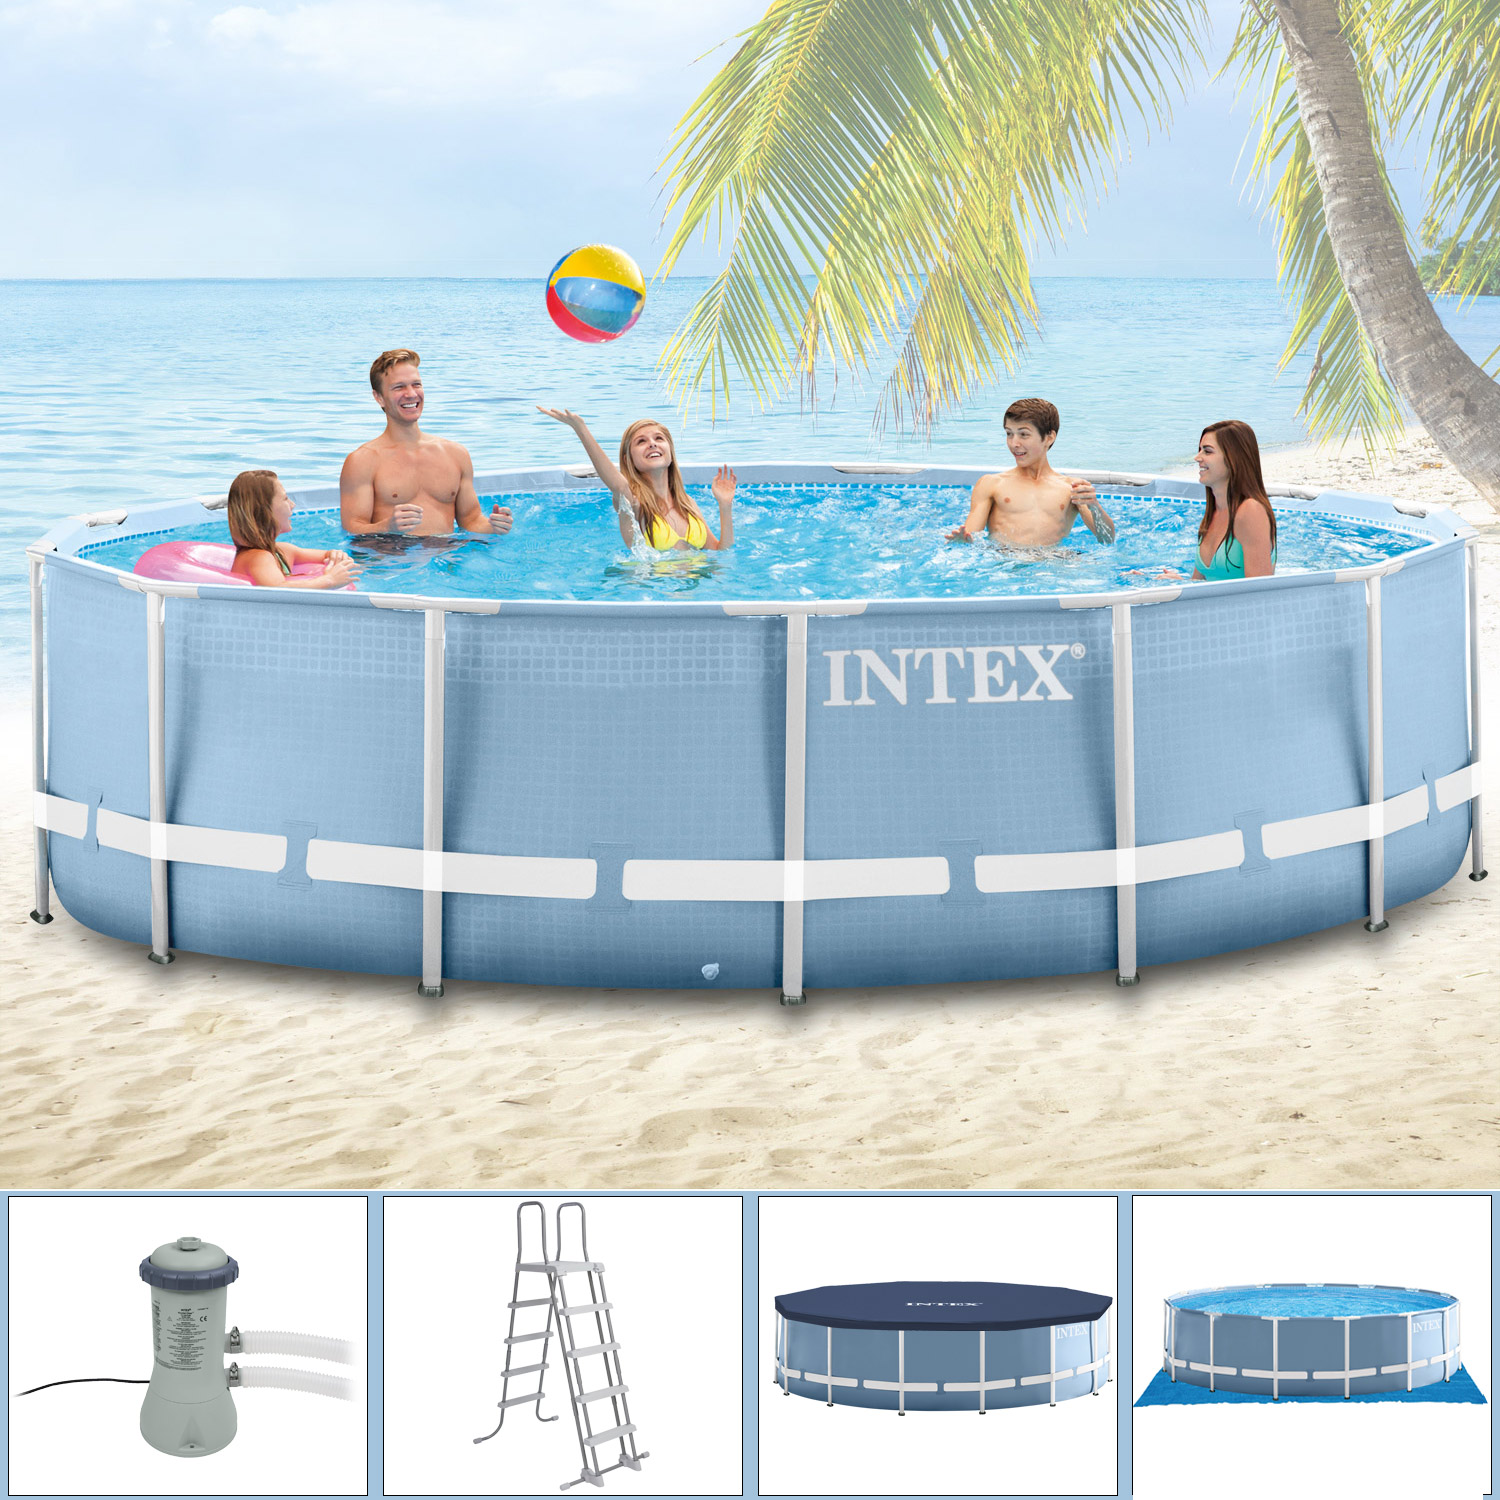 Intex 366x122 komplettset swimming pool schwimmbad frame for Garten pool intex